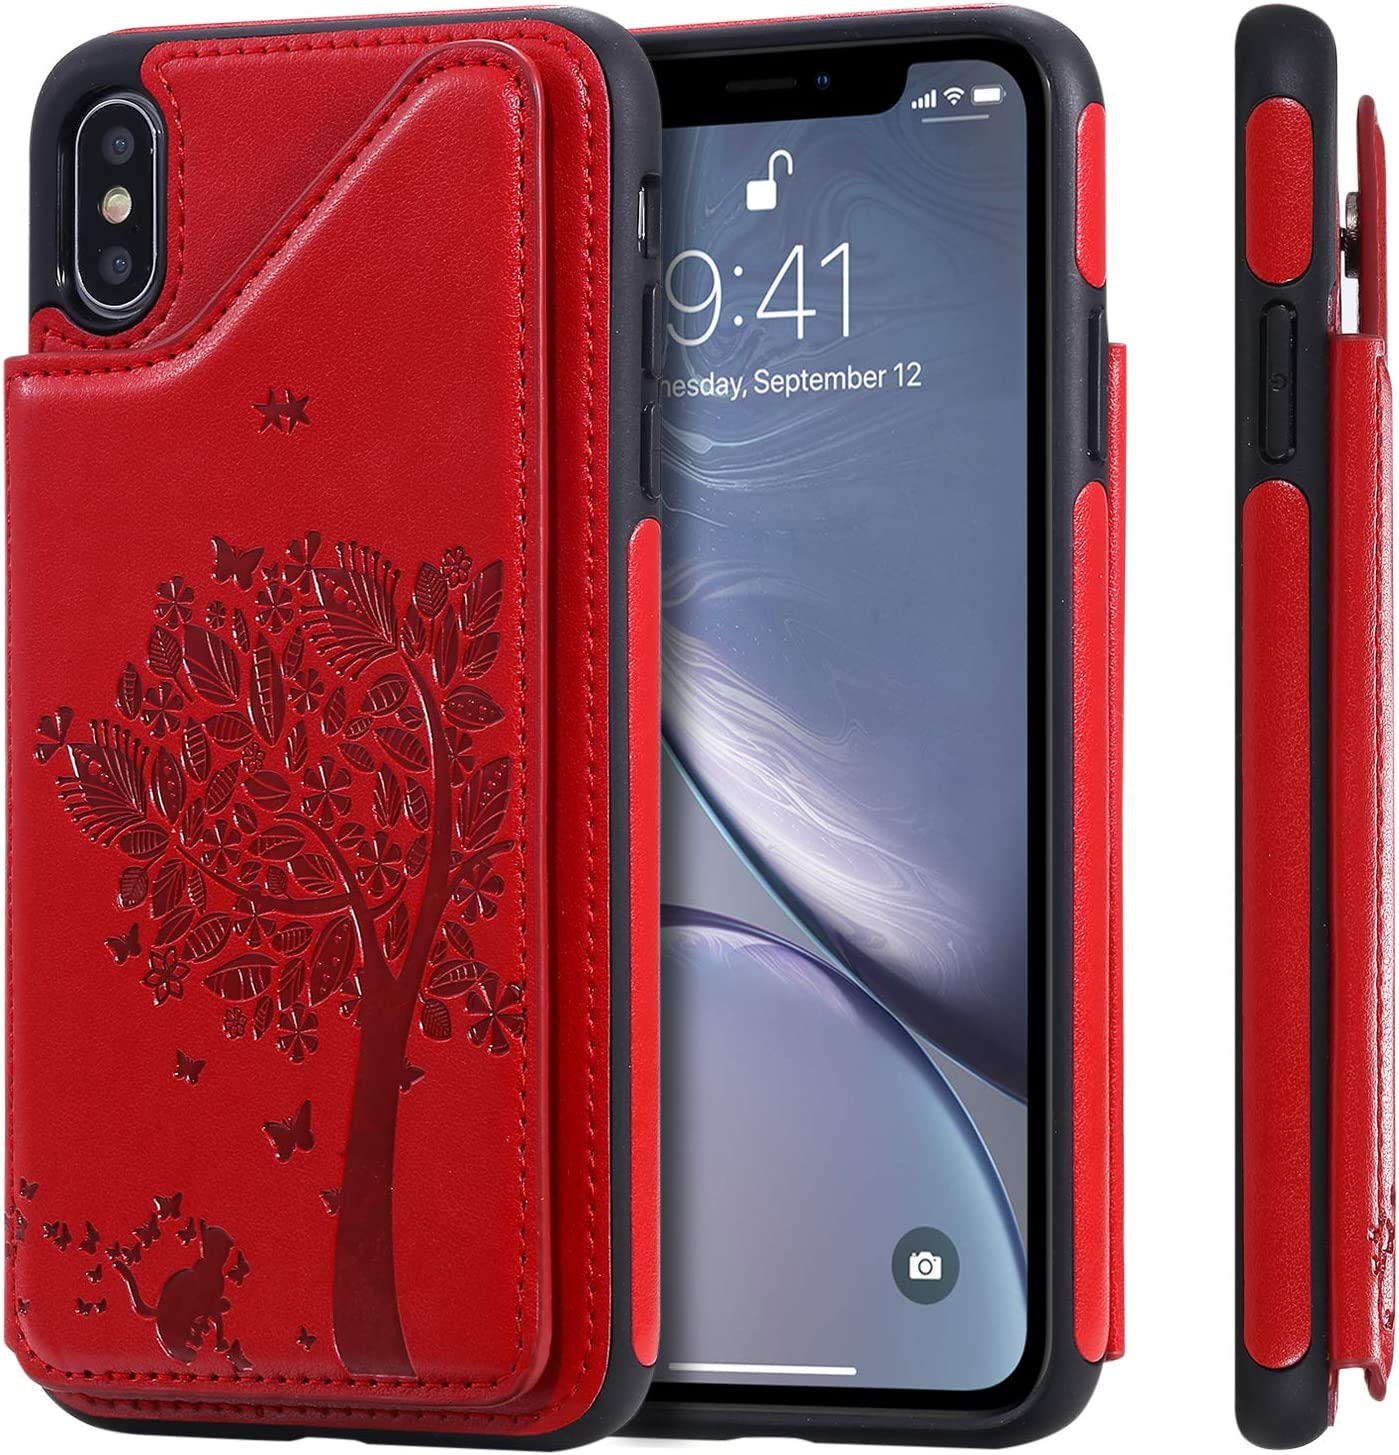 TACOO Cover Case for XS Max iPhone,Card Slot Leather Protective Kickstand Durable Shell Women Men Boy Girl Red